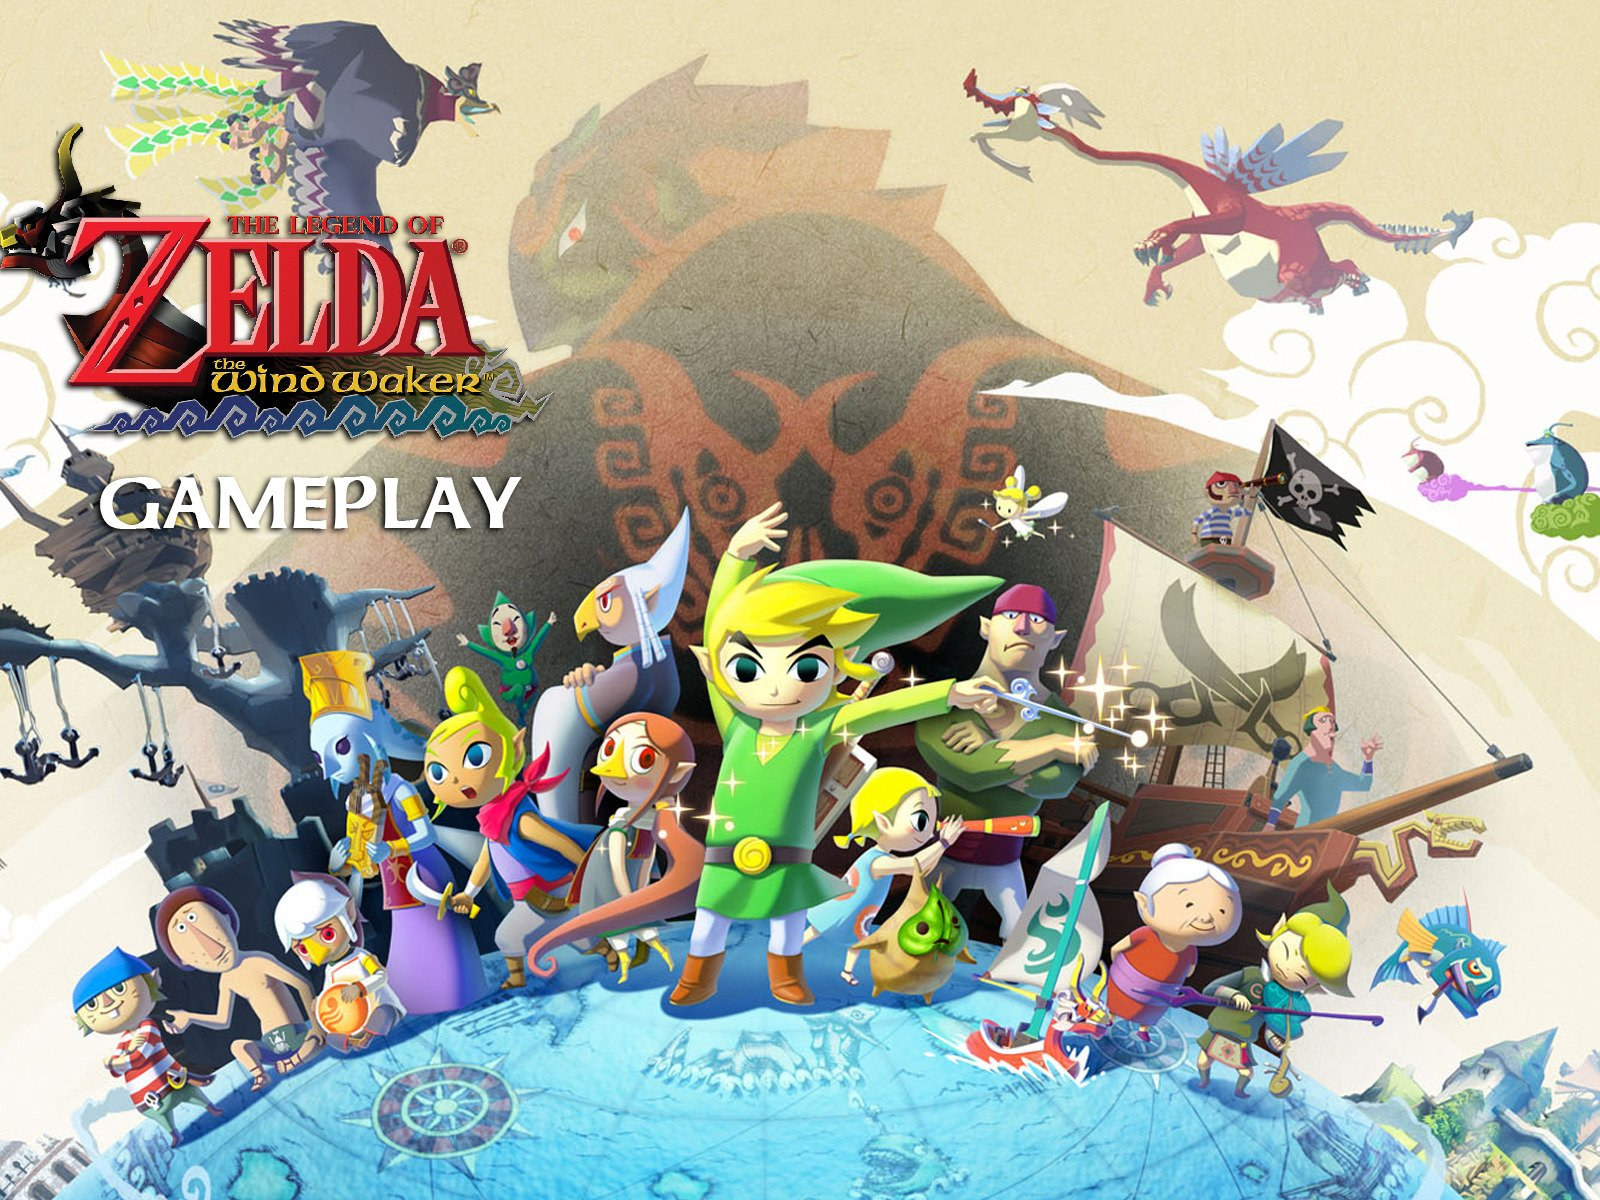 Clip: The Legend Of Zelda The Windwaker Gameplay